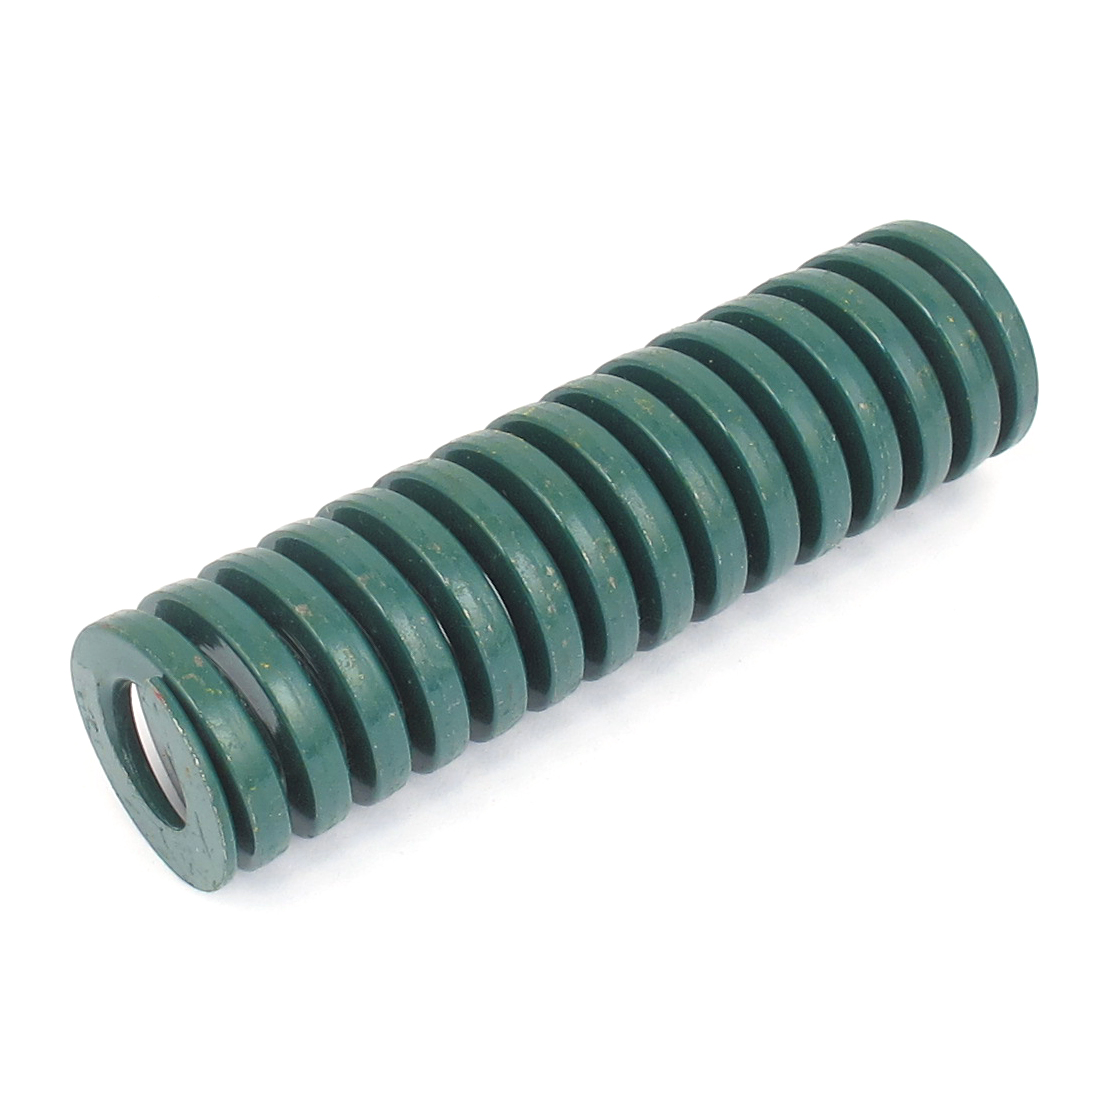 35mmx125mm Chromium Alloy Steel Heavy Load Die Spring Green